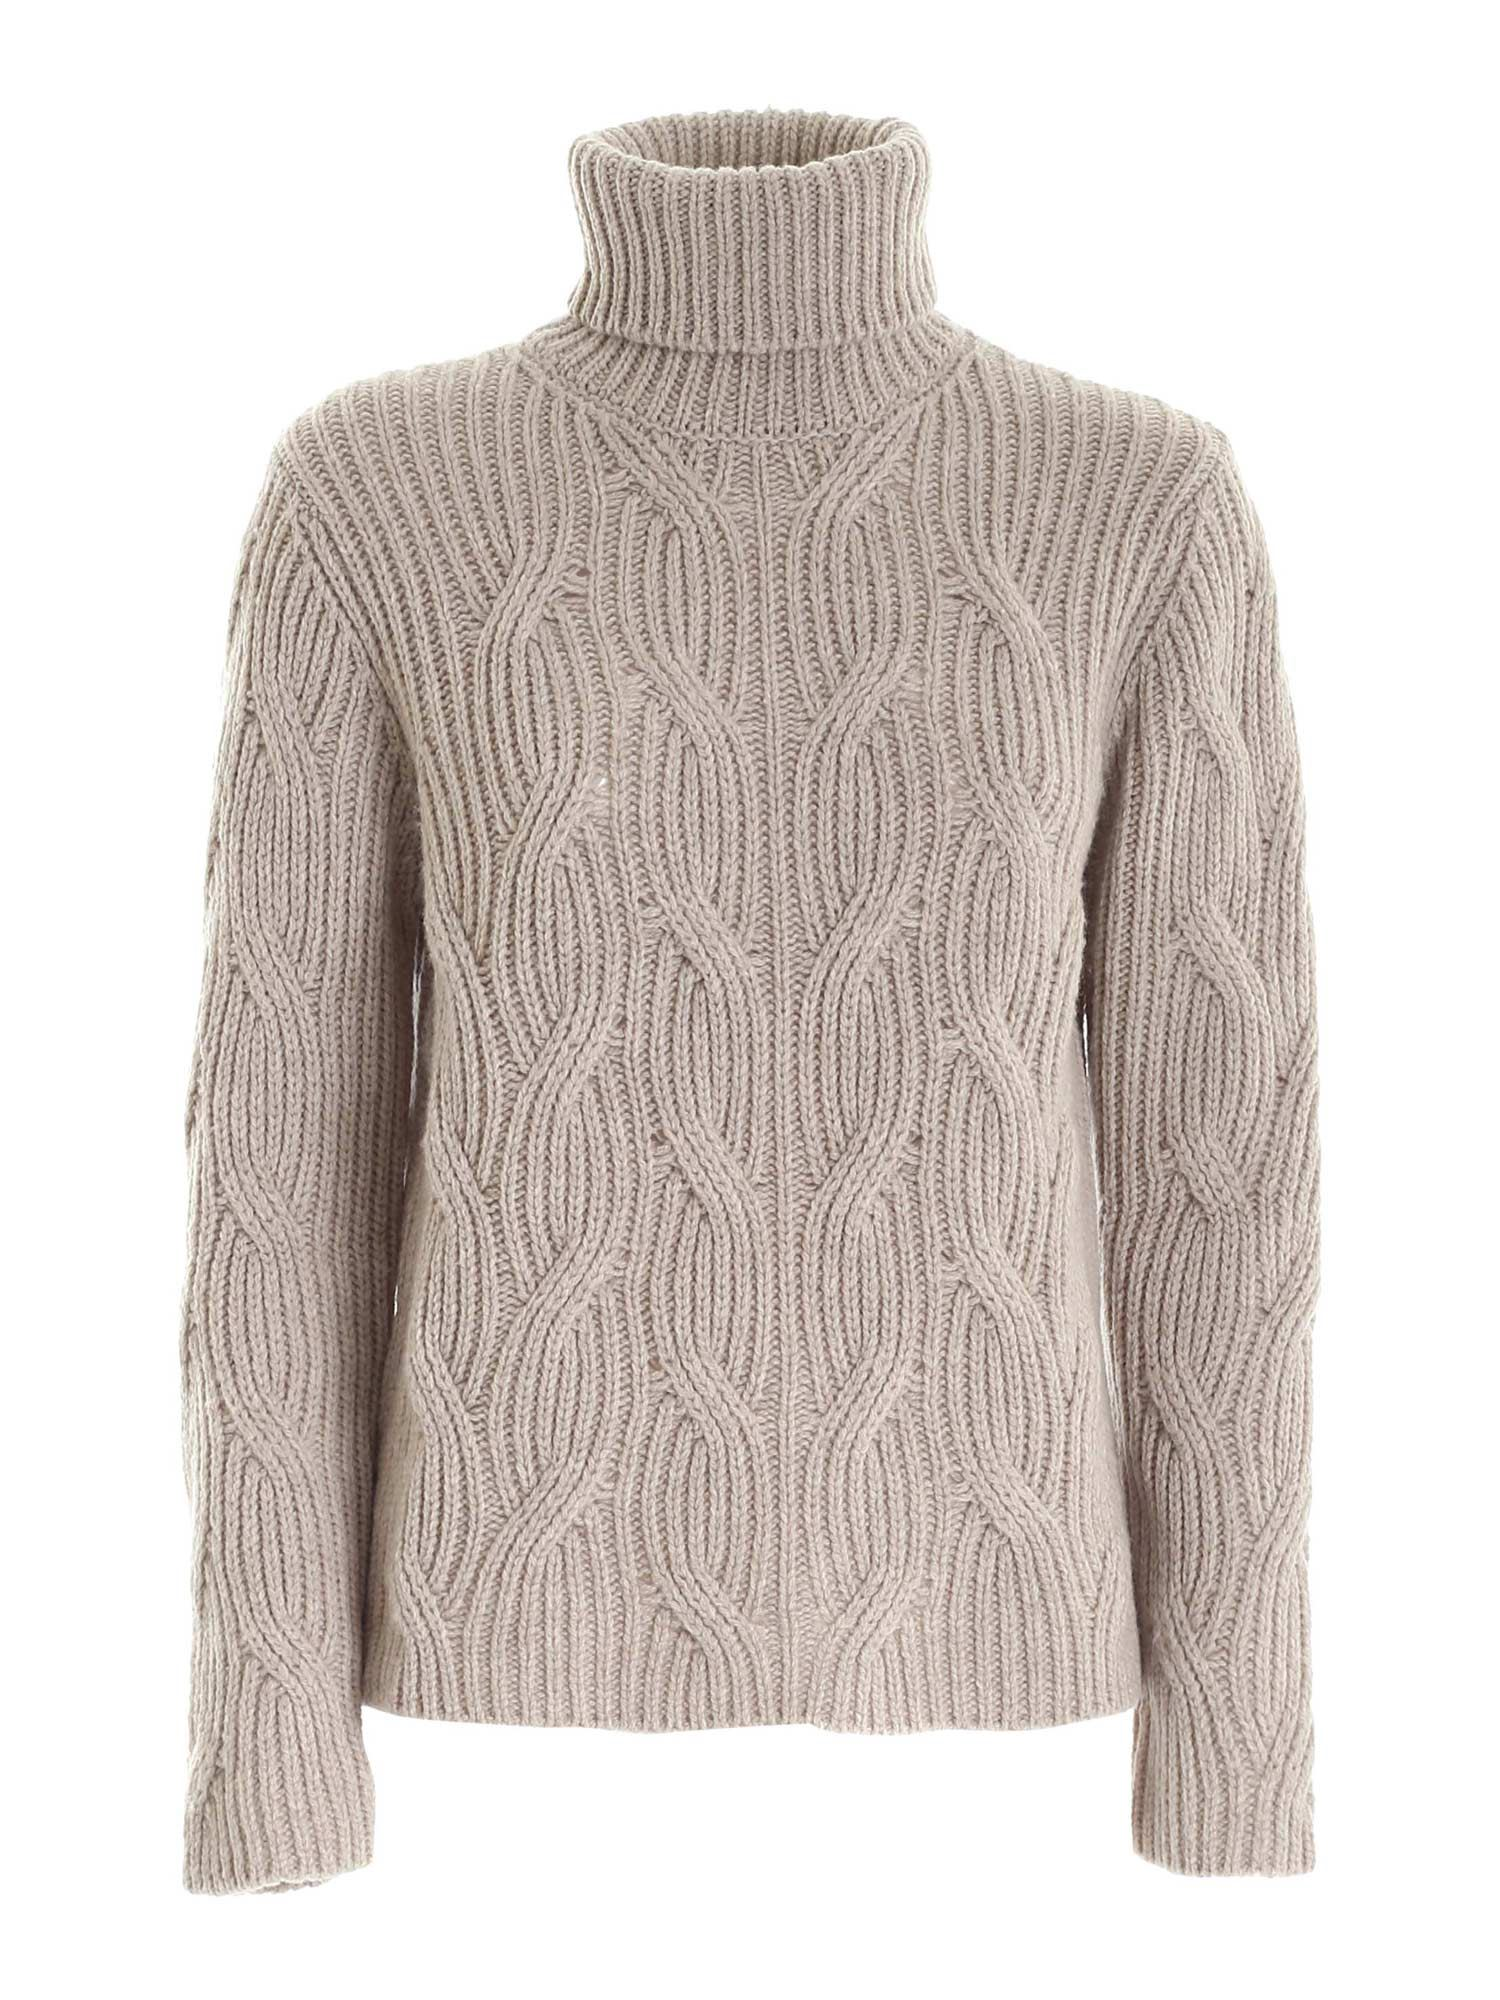 CABLE KNITTING TURTLENECK IN BEIGE PAOLO FIORILLO CAPRI | 10000016 | 18000500011